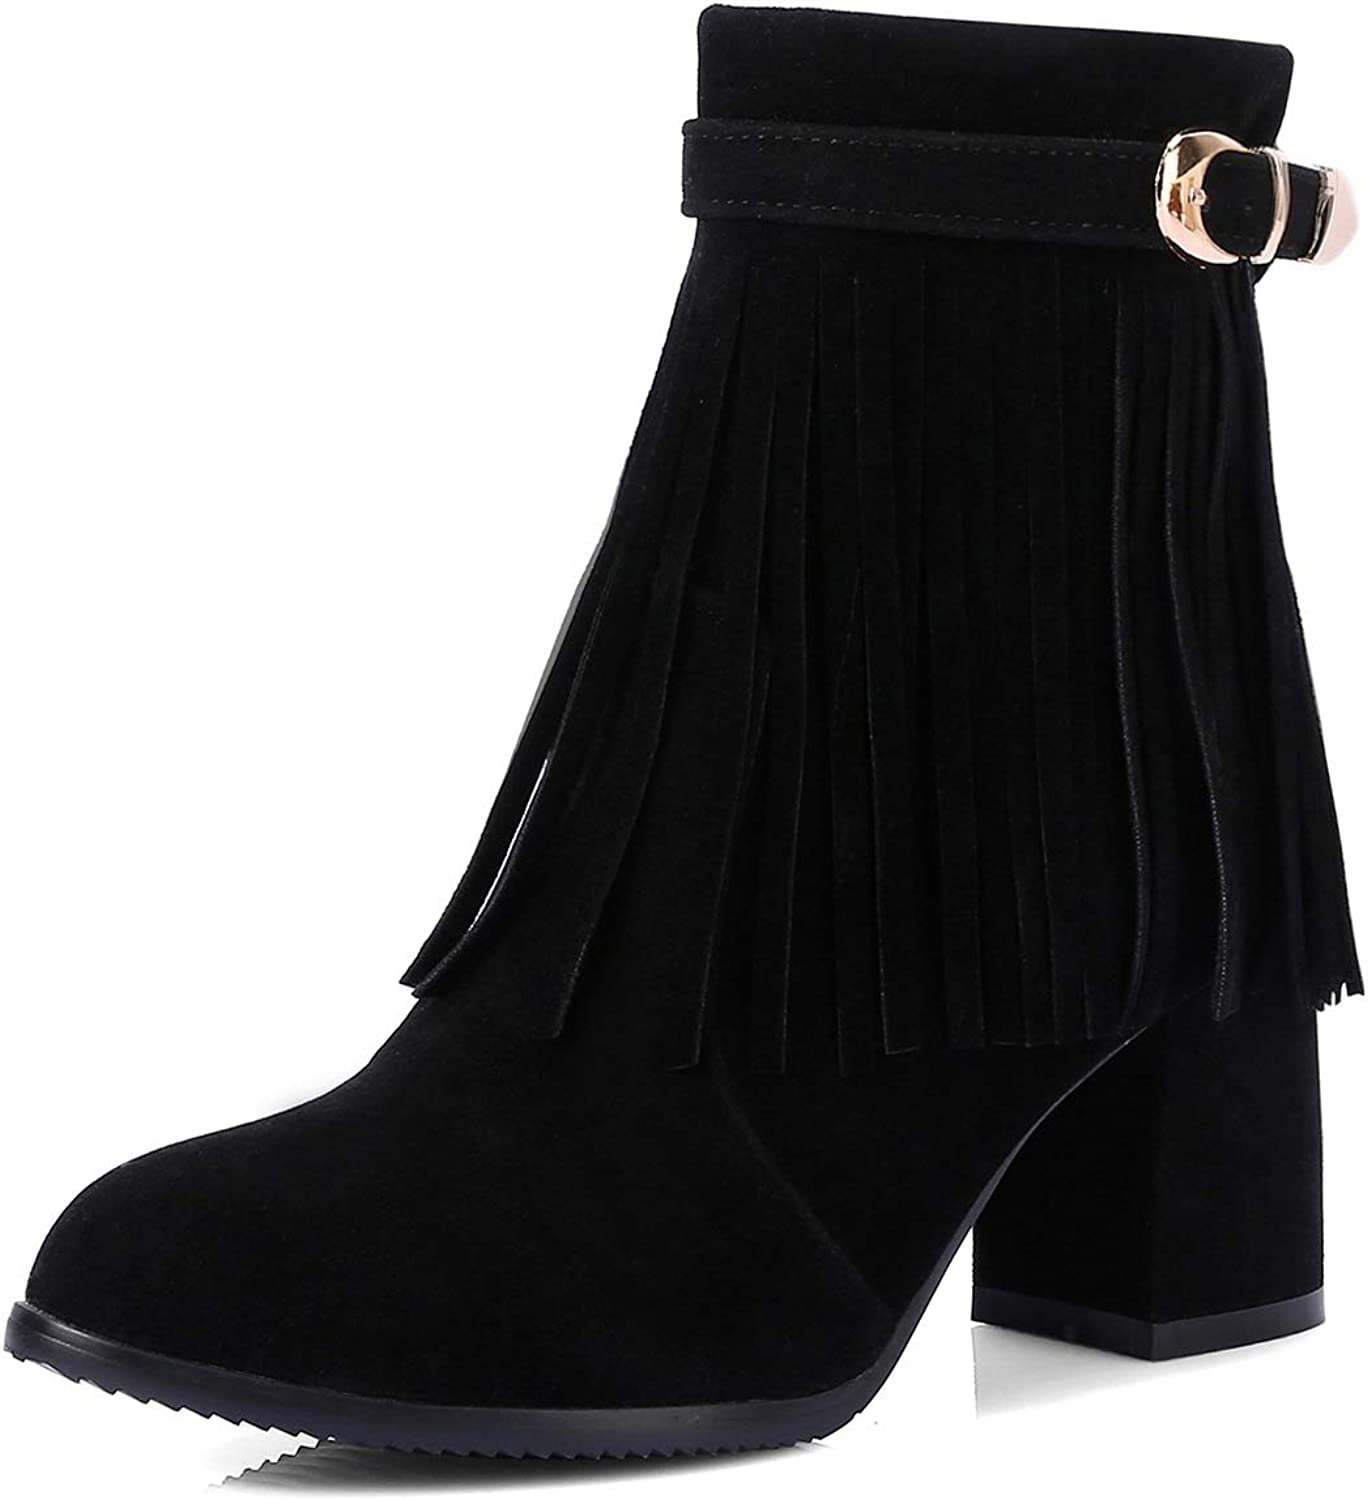 Women's Booties, Fall Winter New Thick Heel High Heel 7cm Fashion Boots Ladies Tassel Martin Boots & Ankle Boots (color   B, Size   36)